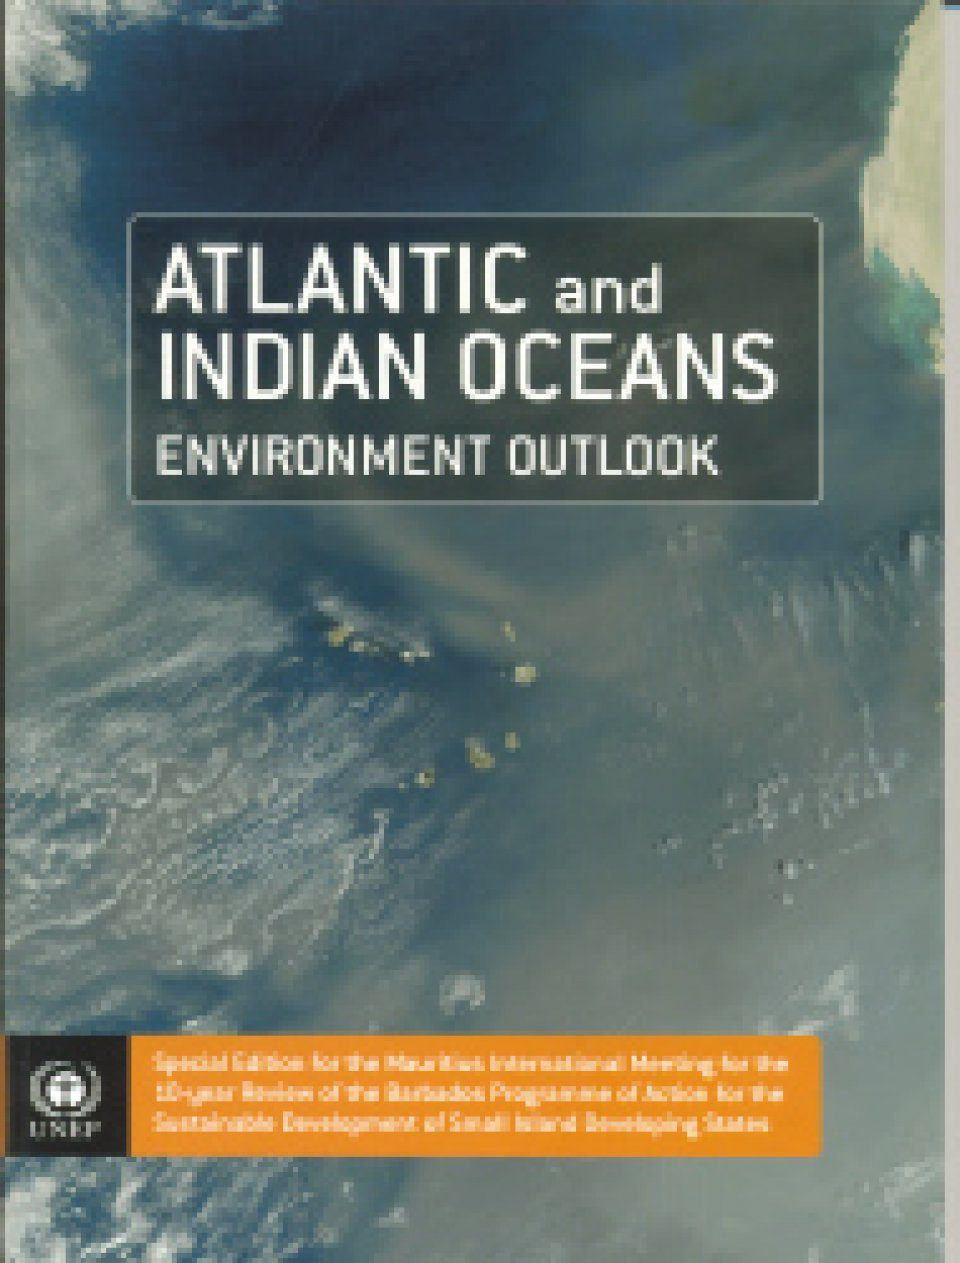 Atlantic and Indian Oceans Environmental Outlook